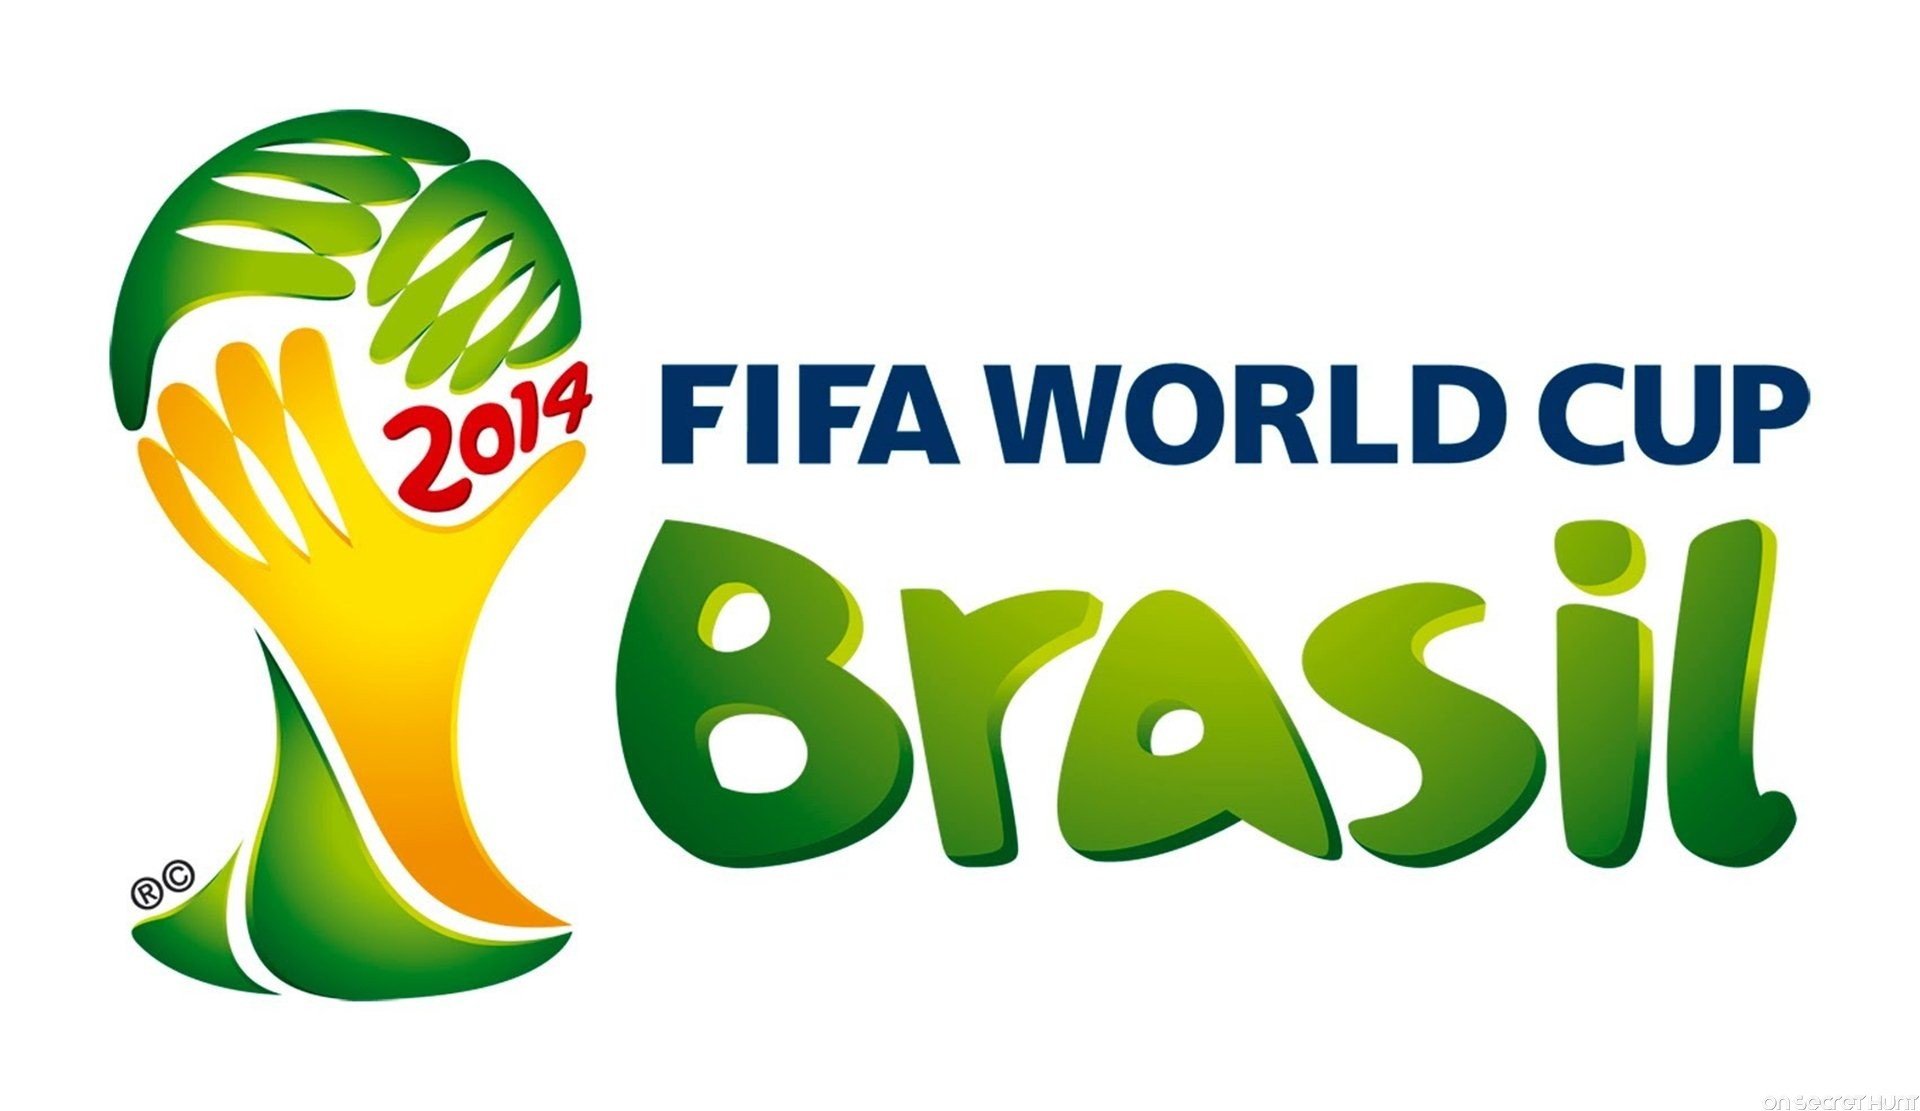 Official 2014 Fifa World Cup Brazil Logo